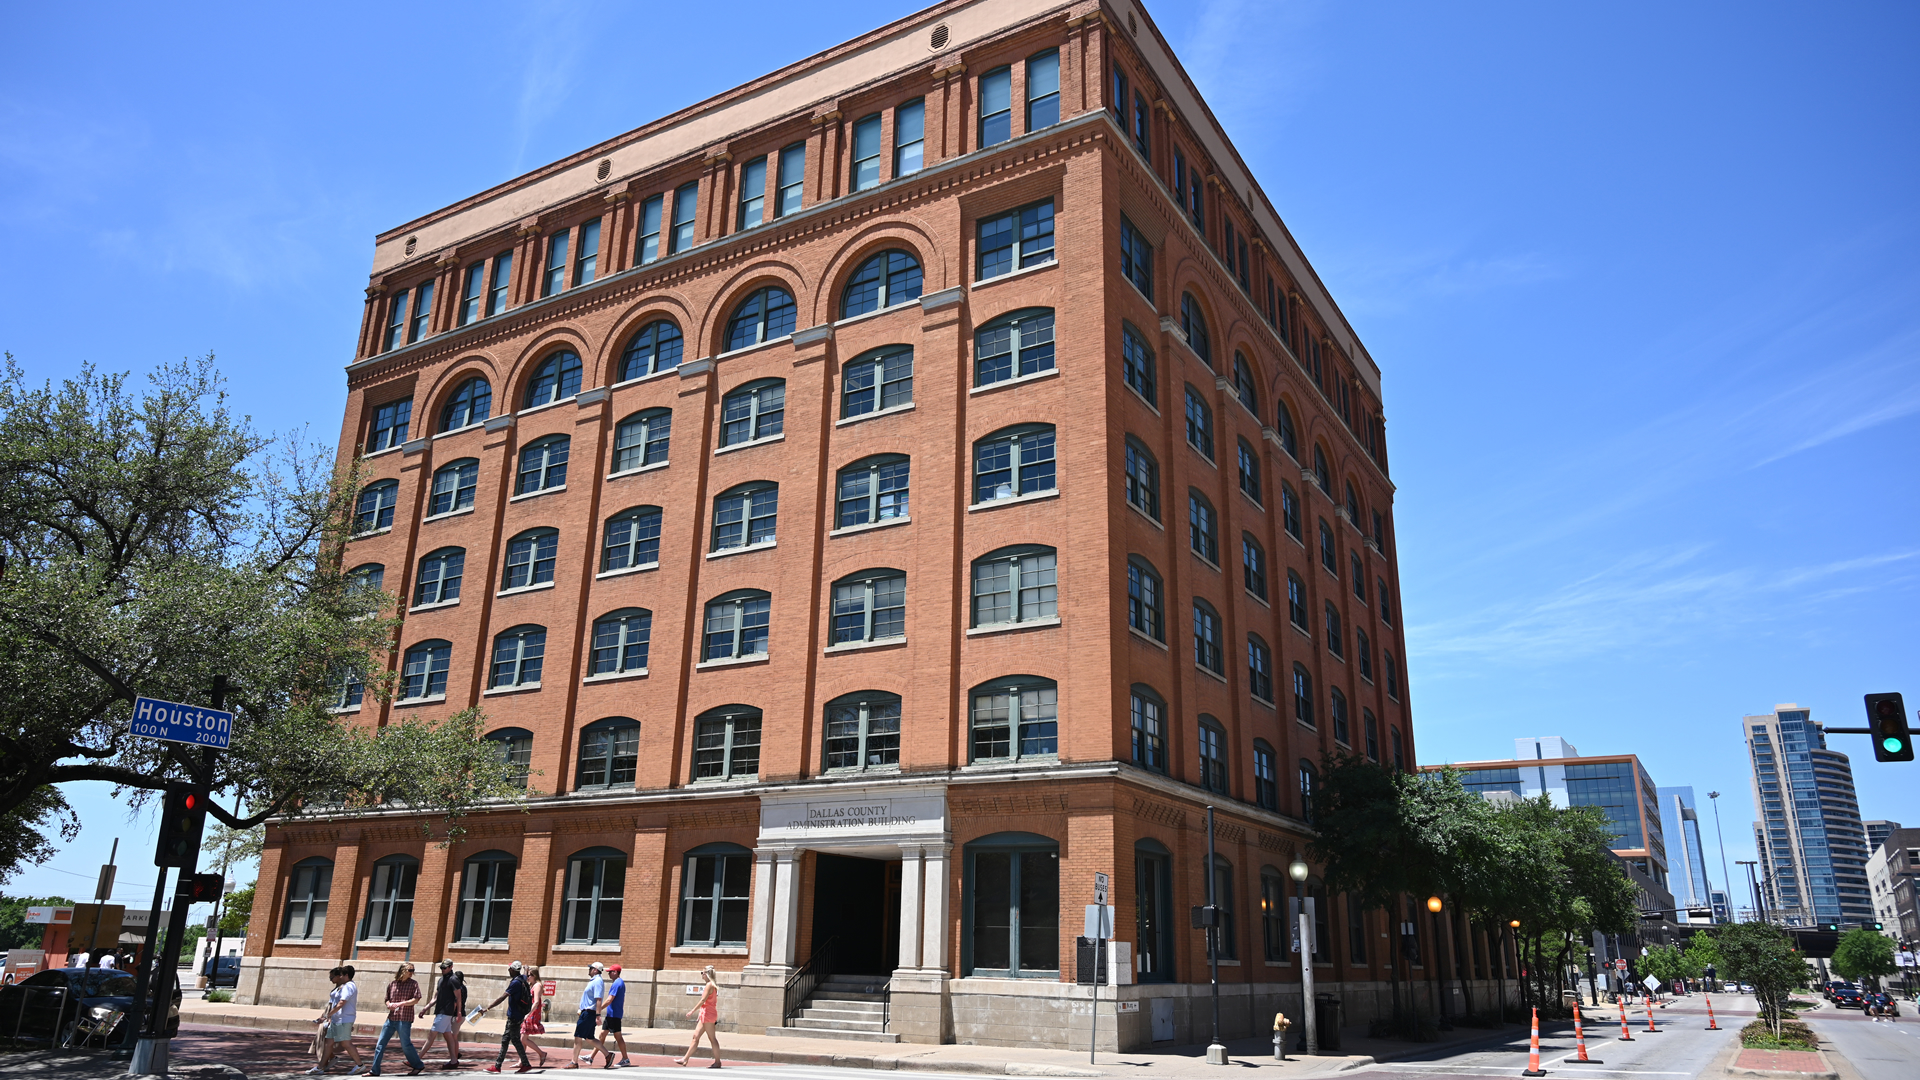 Top landmarks related to the JFK Assassination events in Dallas